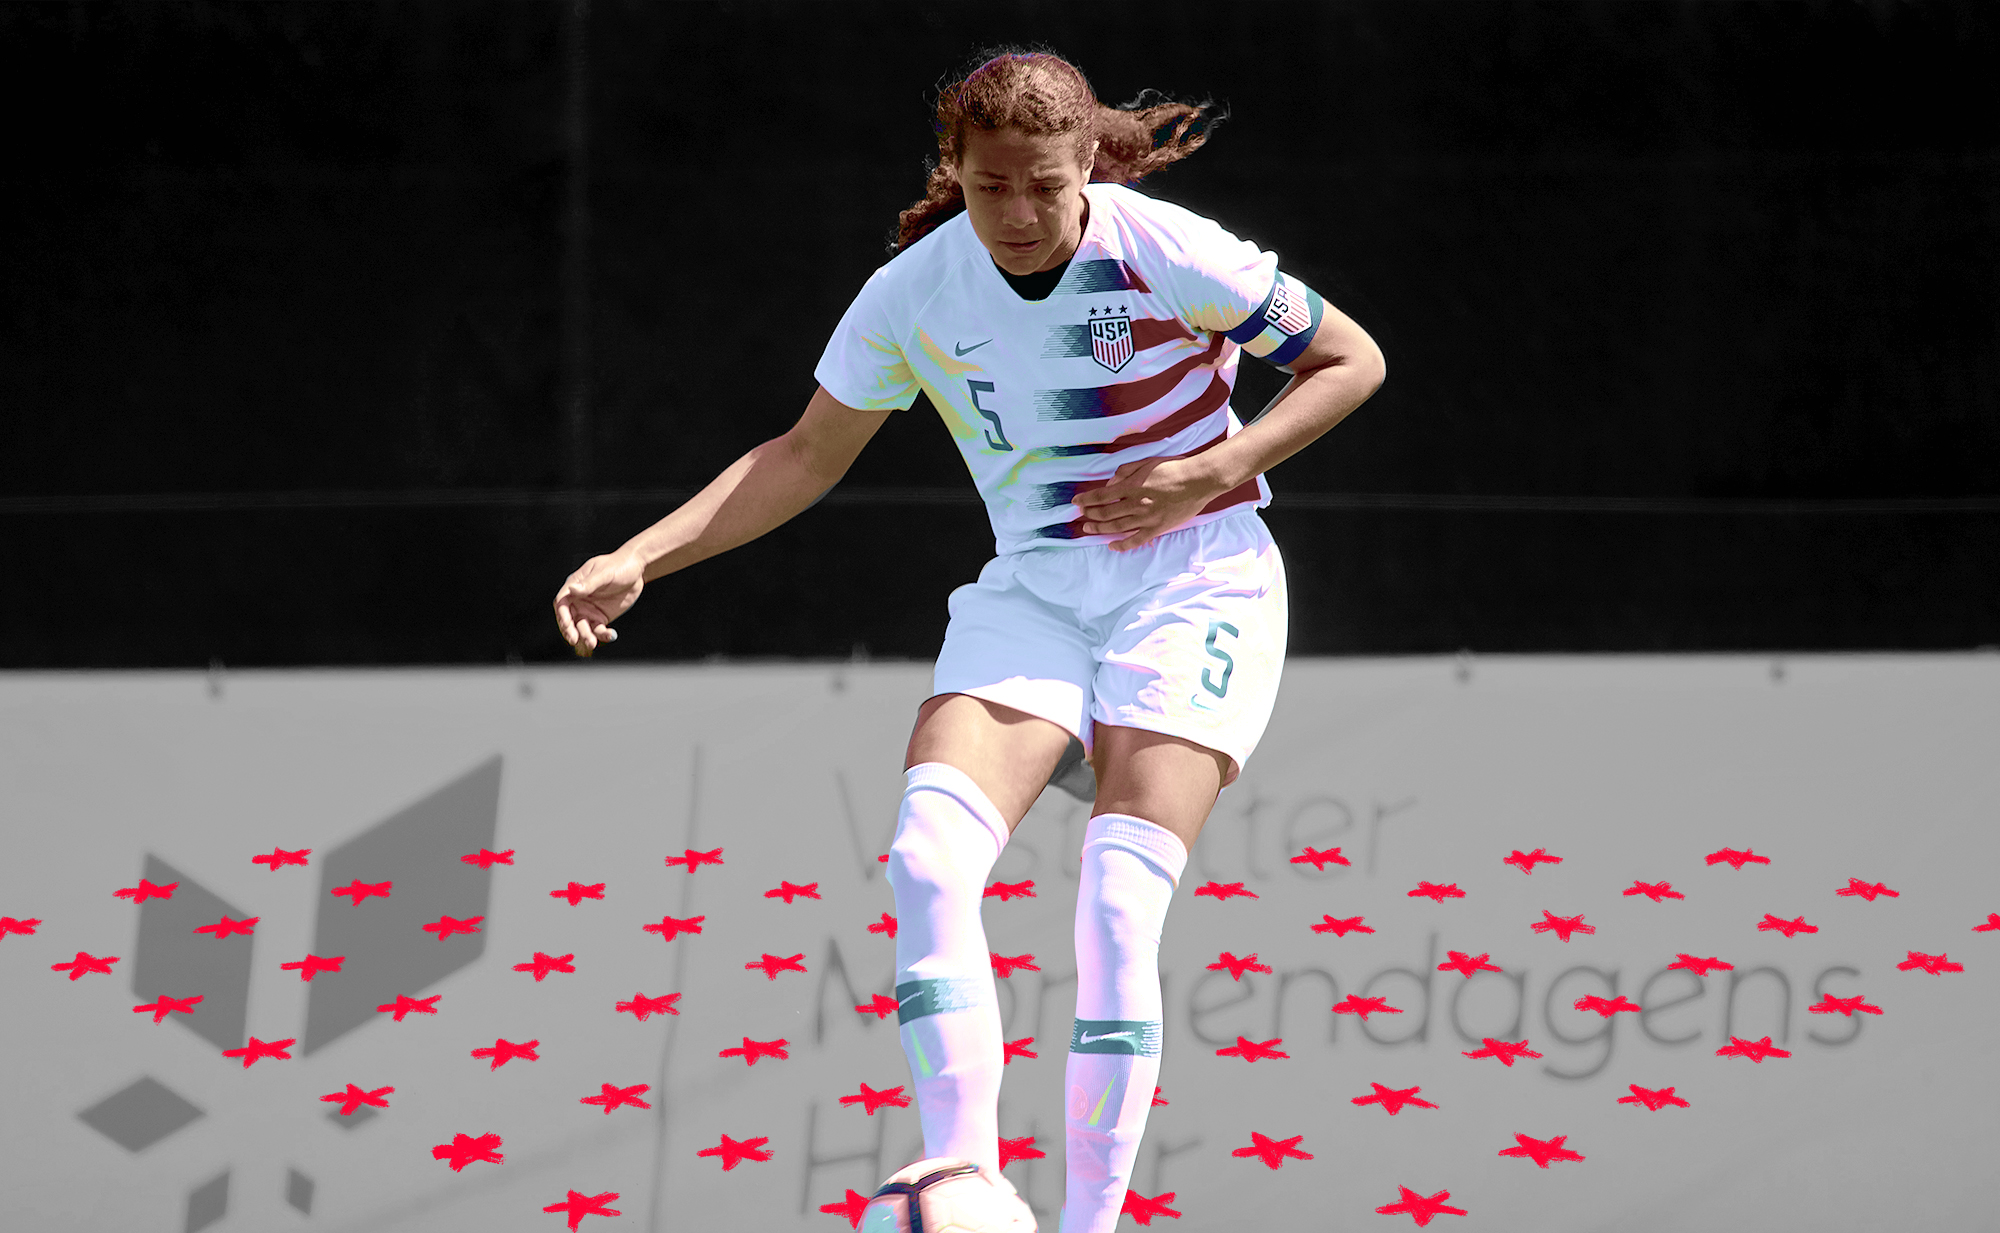 Alana Cook passing the ball while wearing a US women's national team uniform.